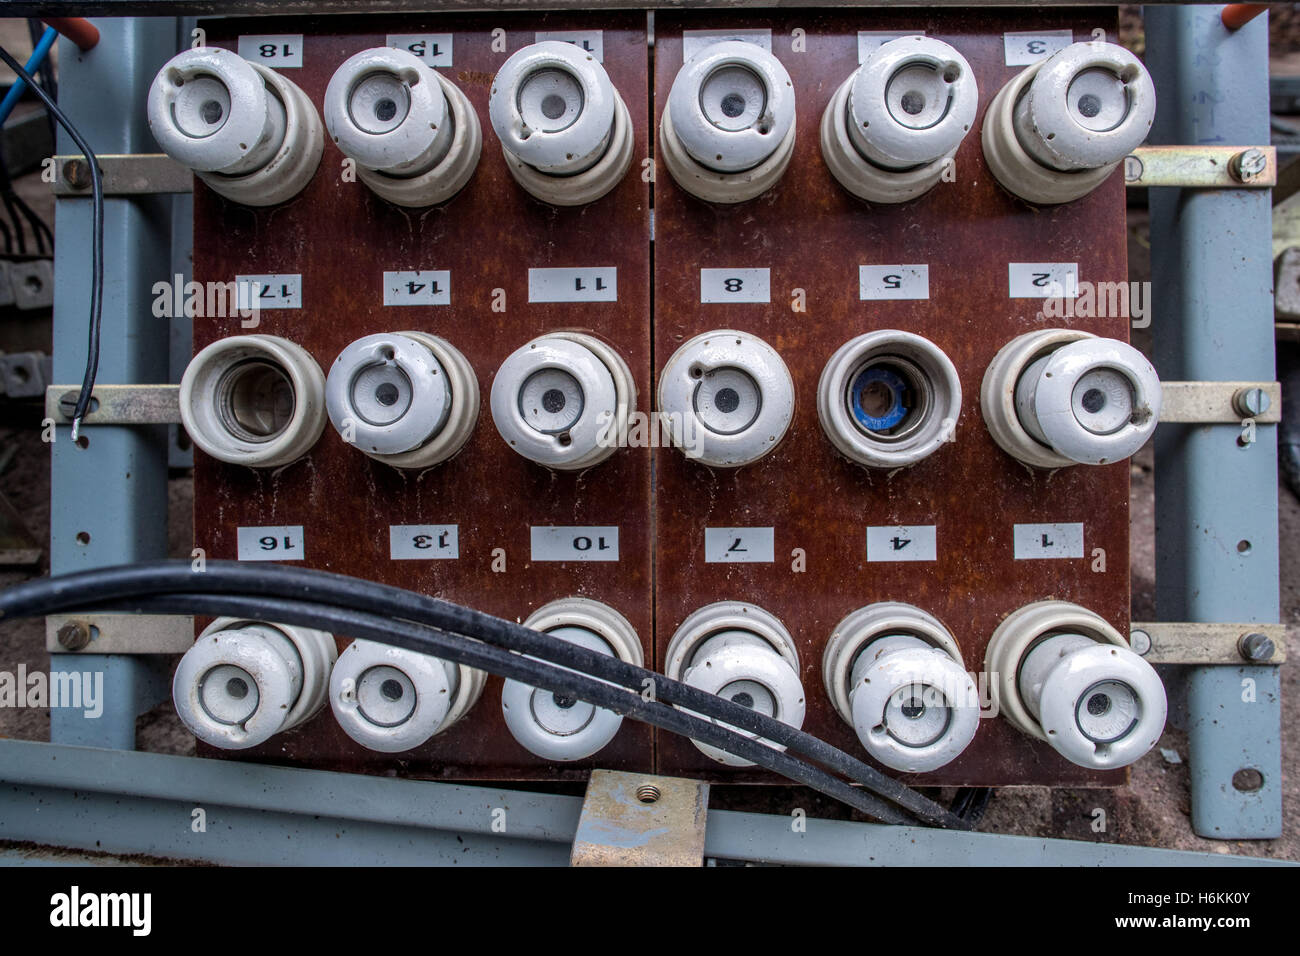 hight resolution of an old fuse panel with ceramic fuses from east germany seen in the former people s swimming pool in the district of lankow in schwerin germany